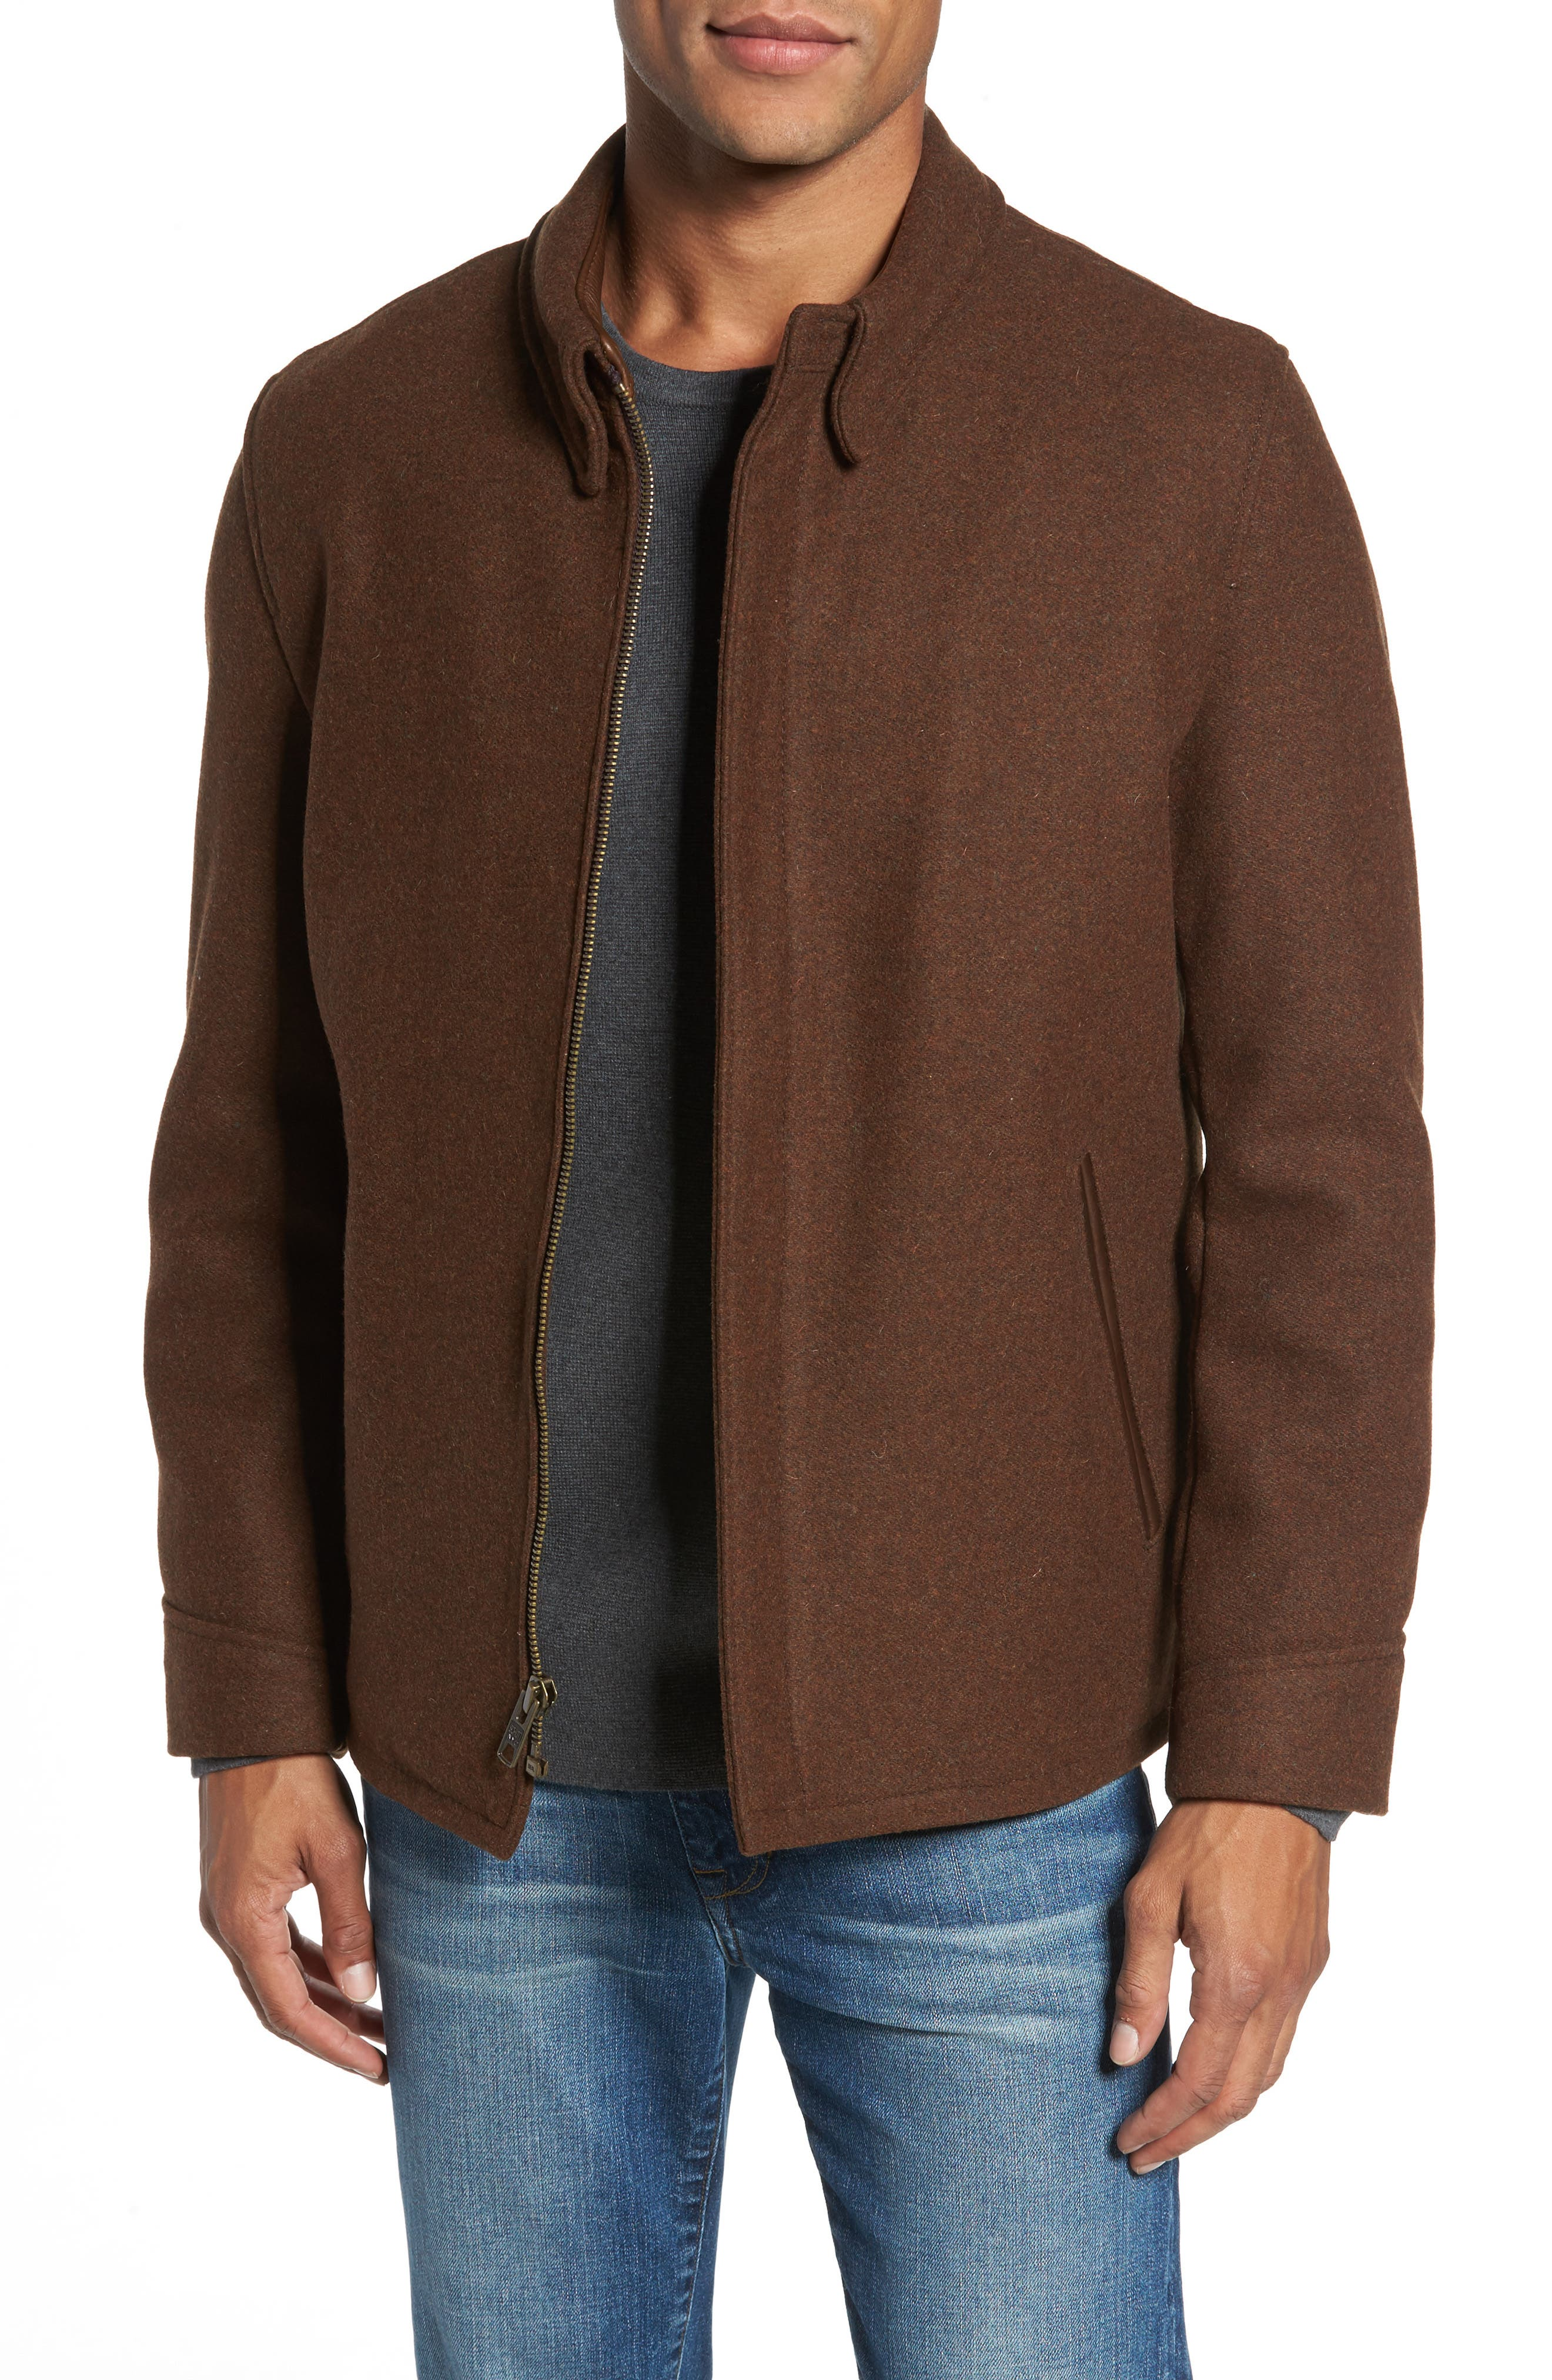 Liberty Wool Blend Zip Front Jacket,                         Main,                         color, Brown